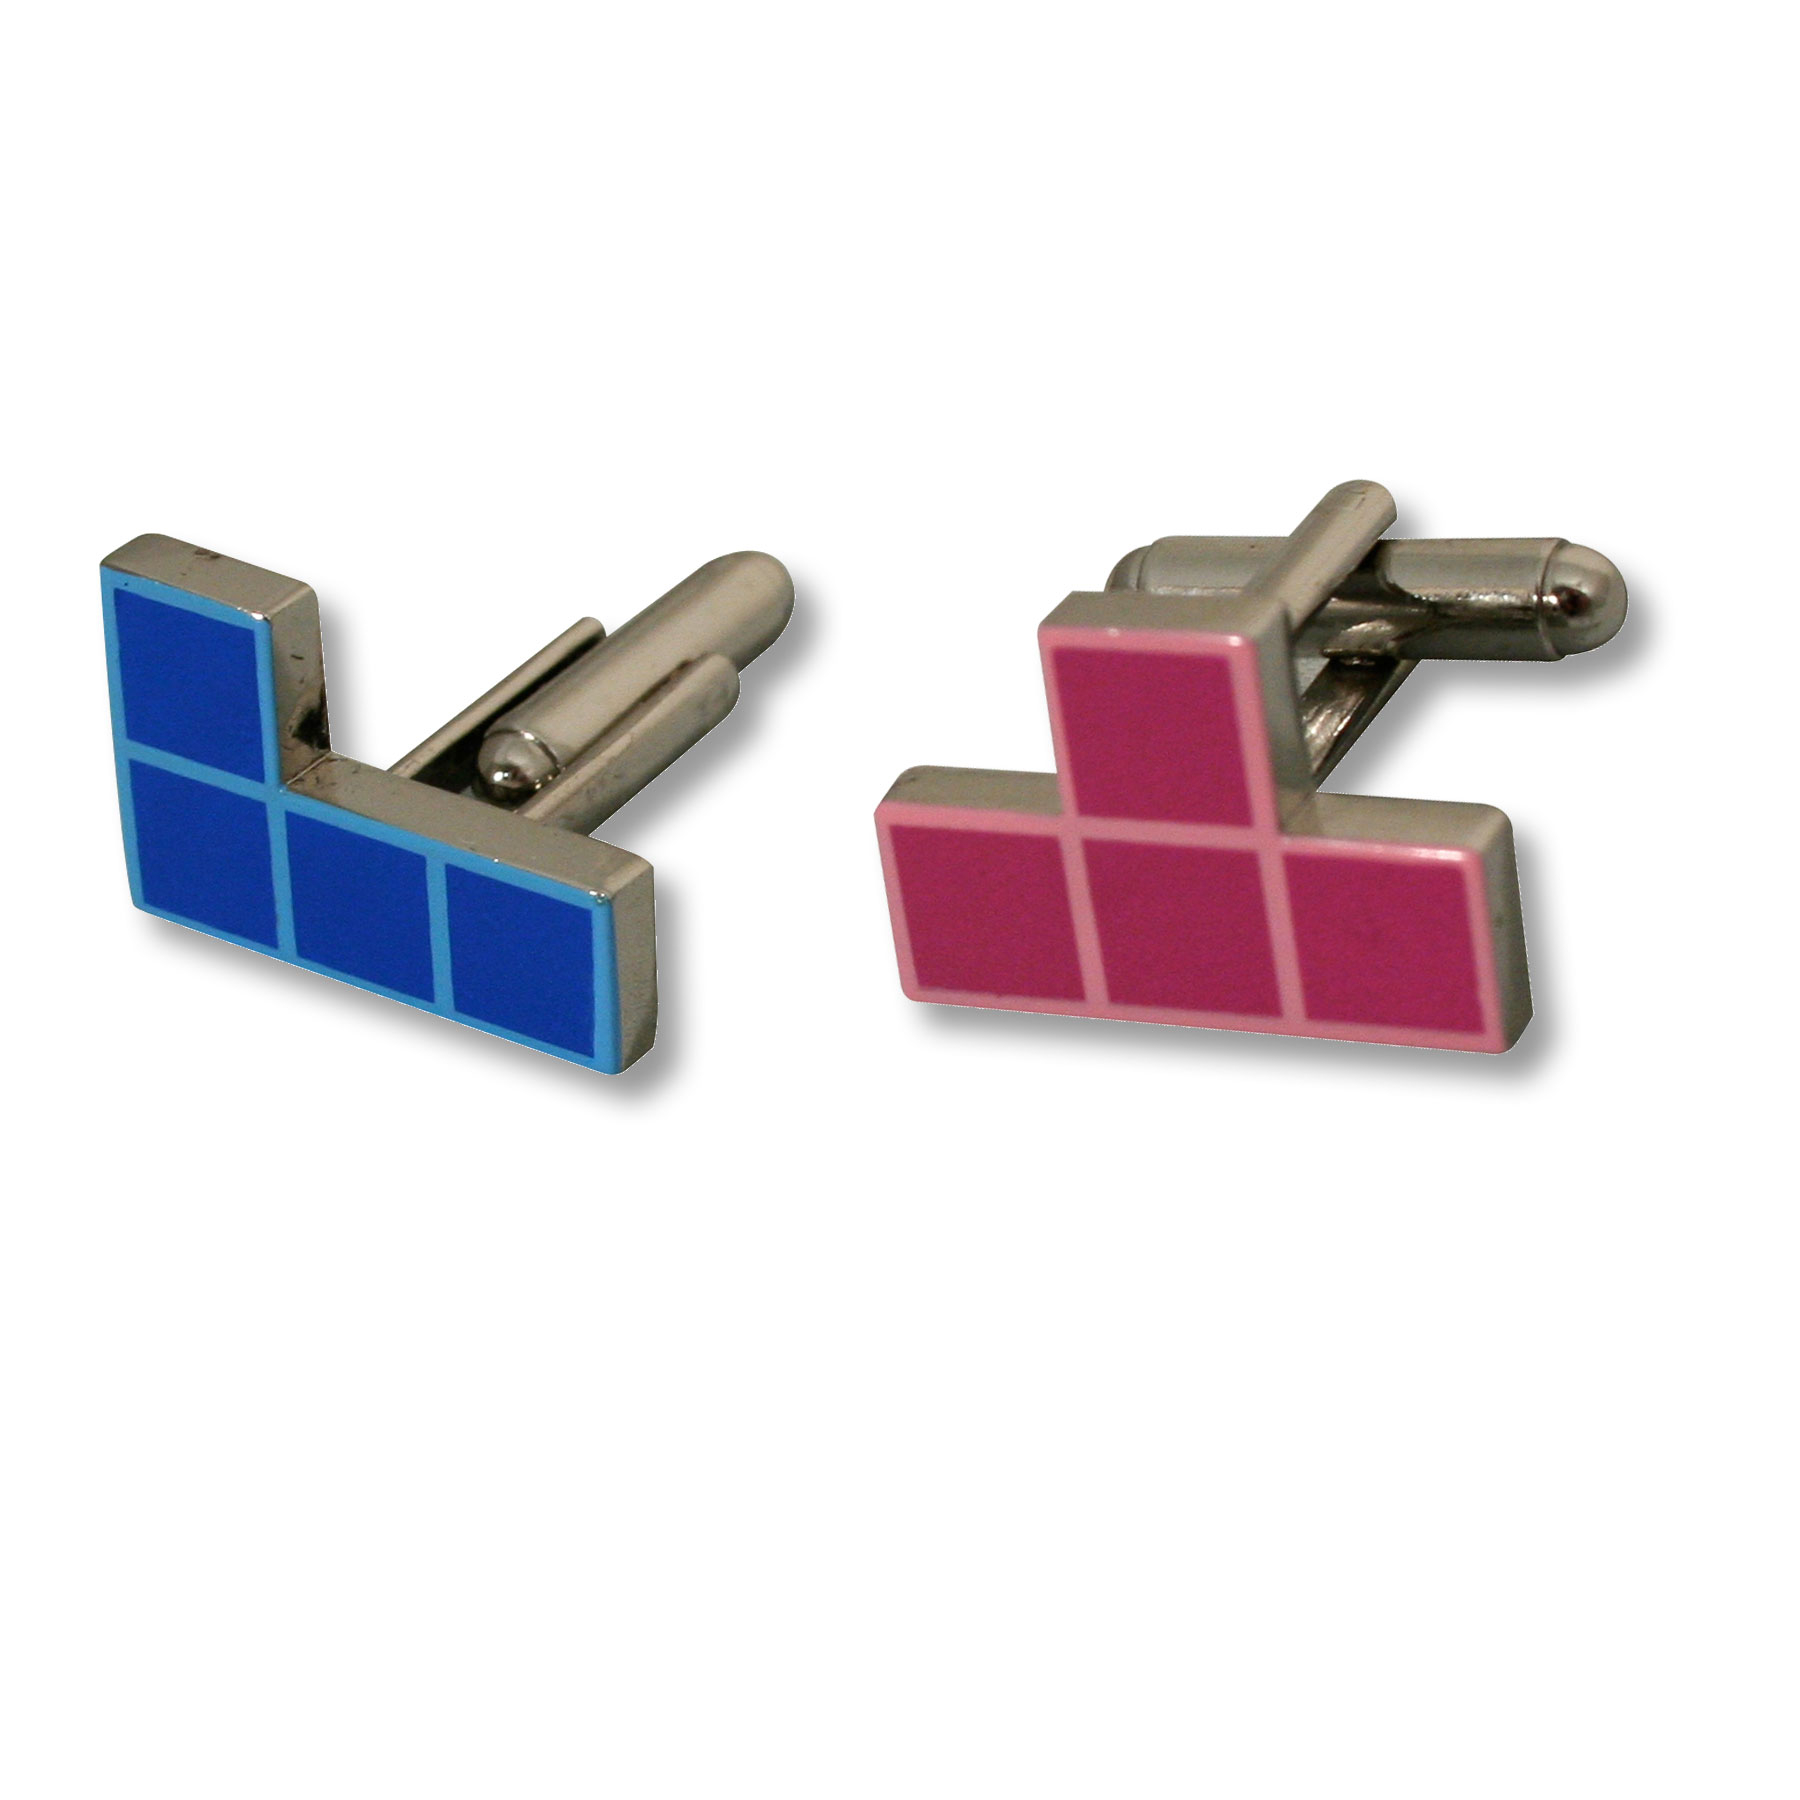 Alternative photo: Tetris Cufflinks